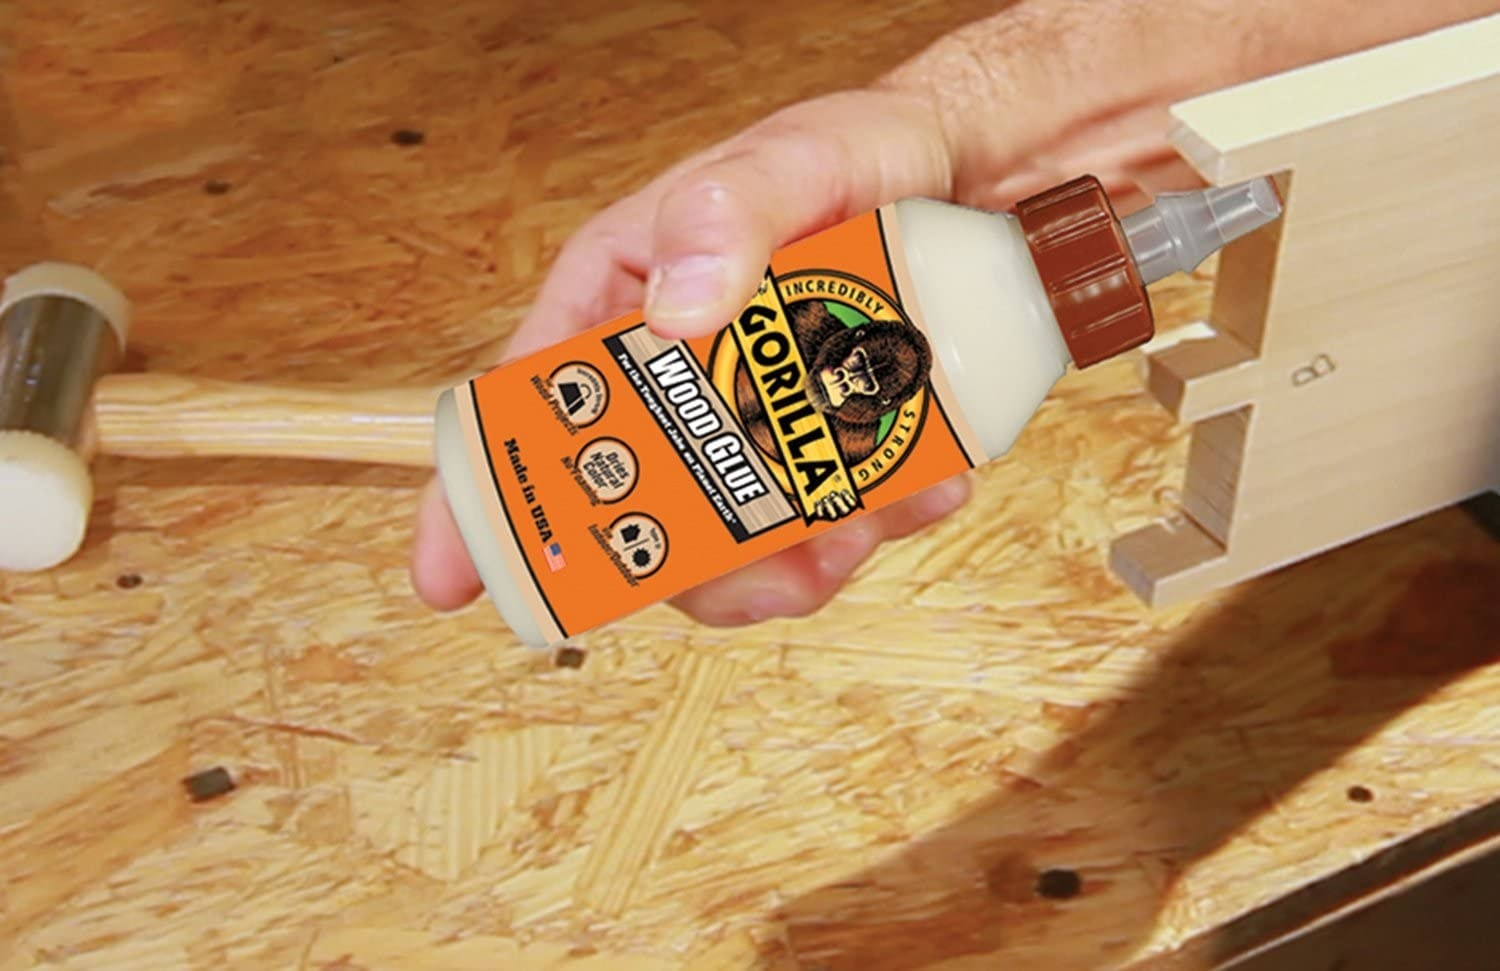 A person applying glue to a piece of wood